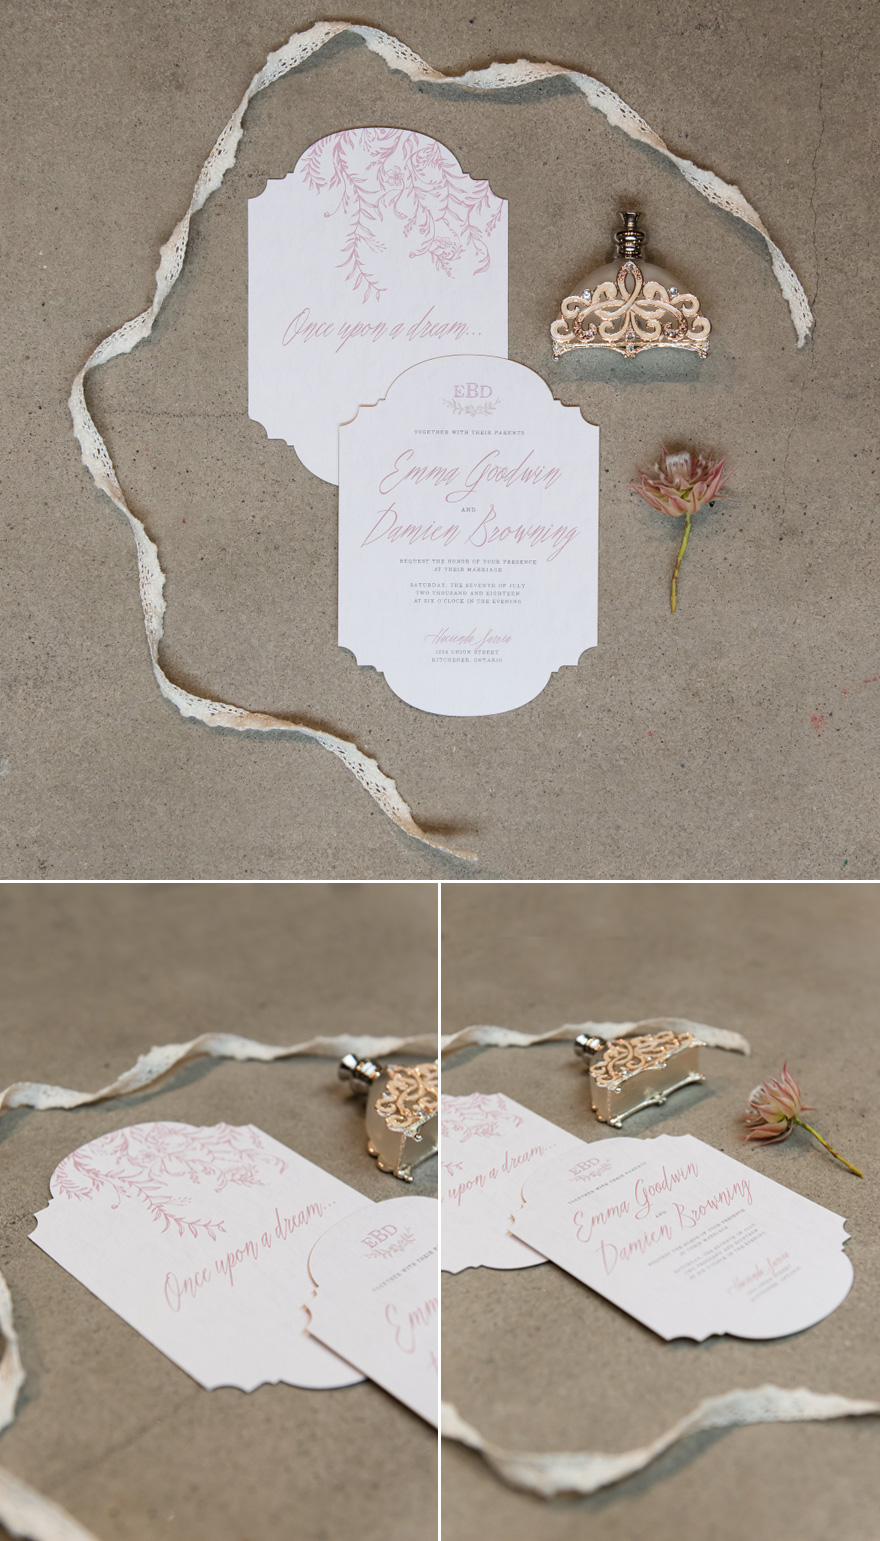 Modern Fairytale Wedding Invitation | Confetti.co.uk